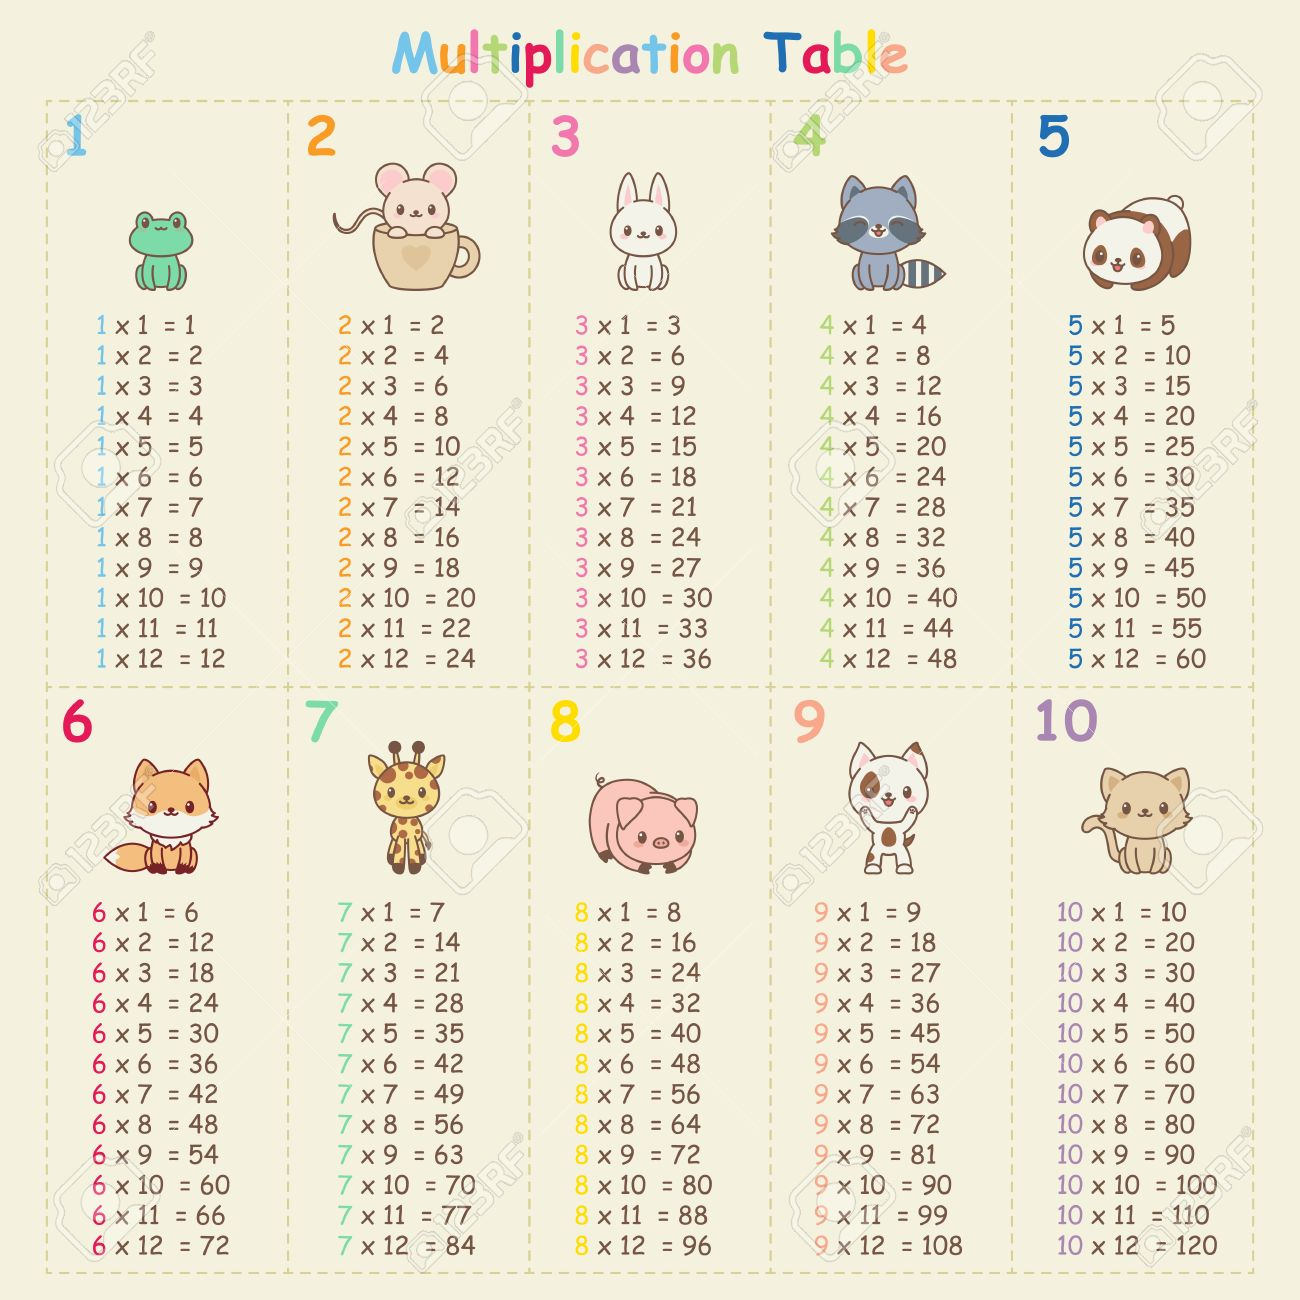 1 to 50 multiplication table gallery periodic table images multiplication table with cute kawaii animals educational art multiplication table with cute kawaii animals educational art gamestrikefo Gallery